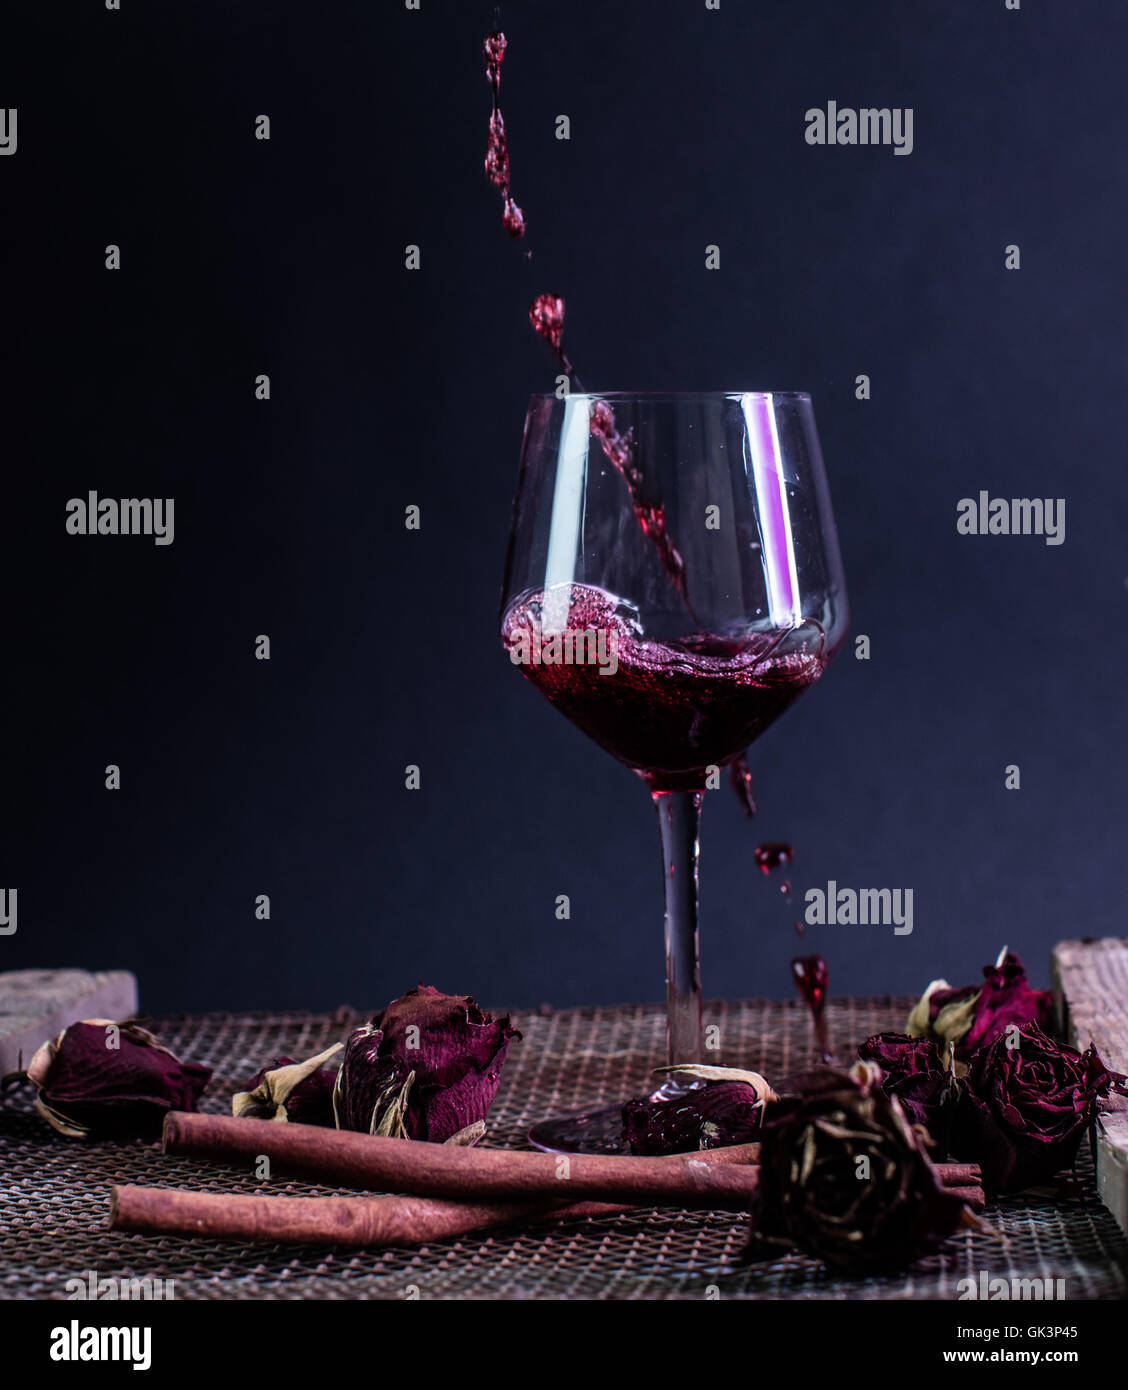 splash of red wine in to a glass - Stock Image